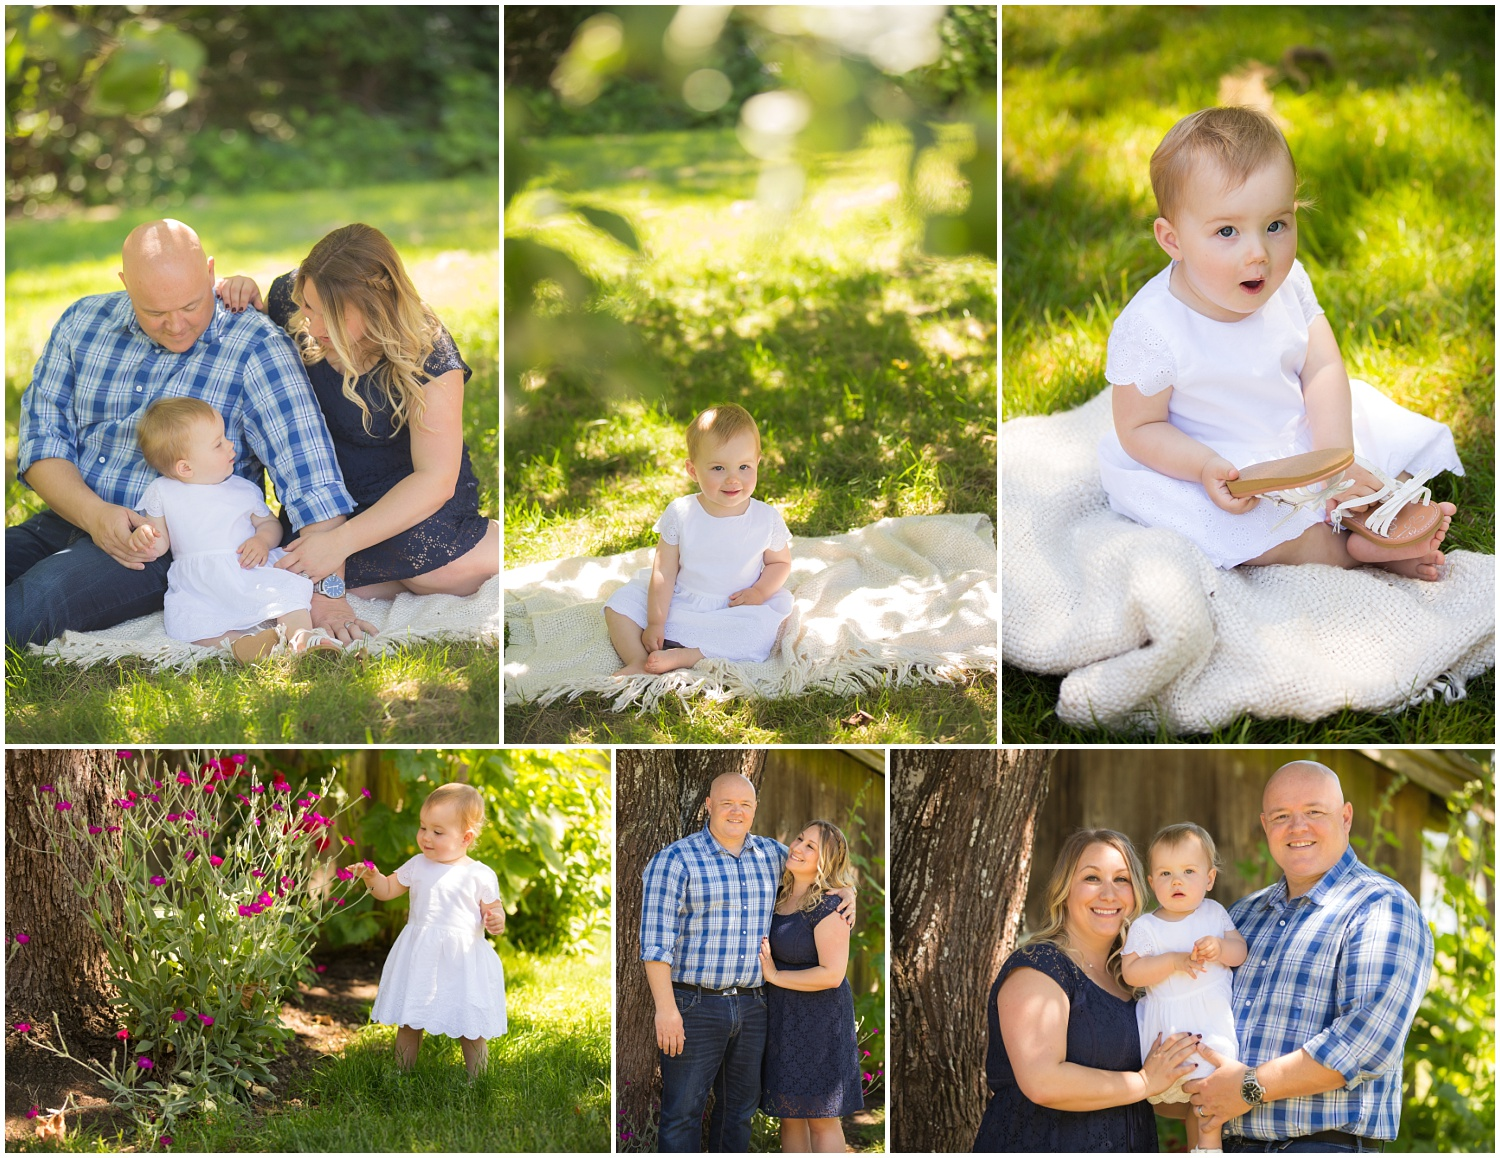 Amazing Day Photography - Stewart Farm House Family Session - Photo 4 Hope - BC Childrens Hospital Fundraiser (7).jpg